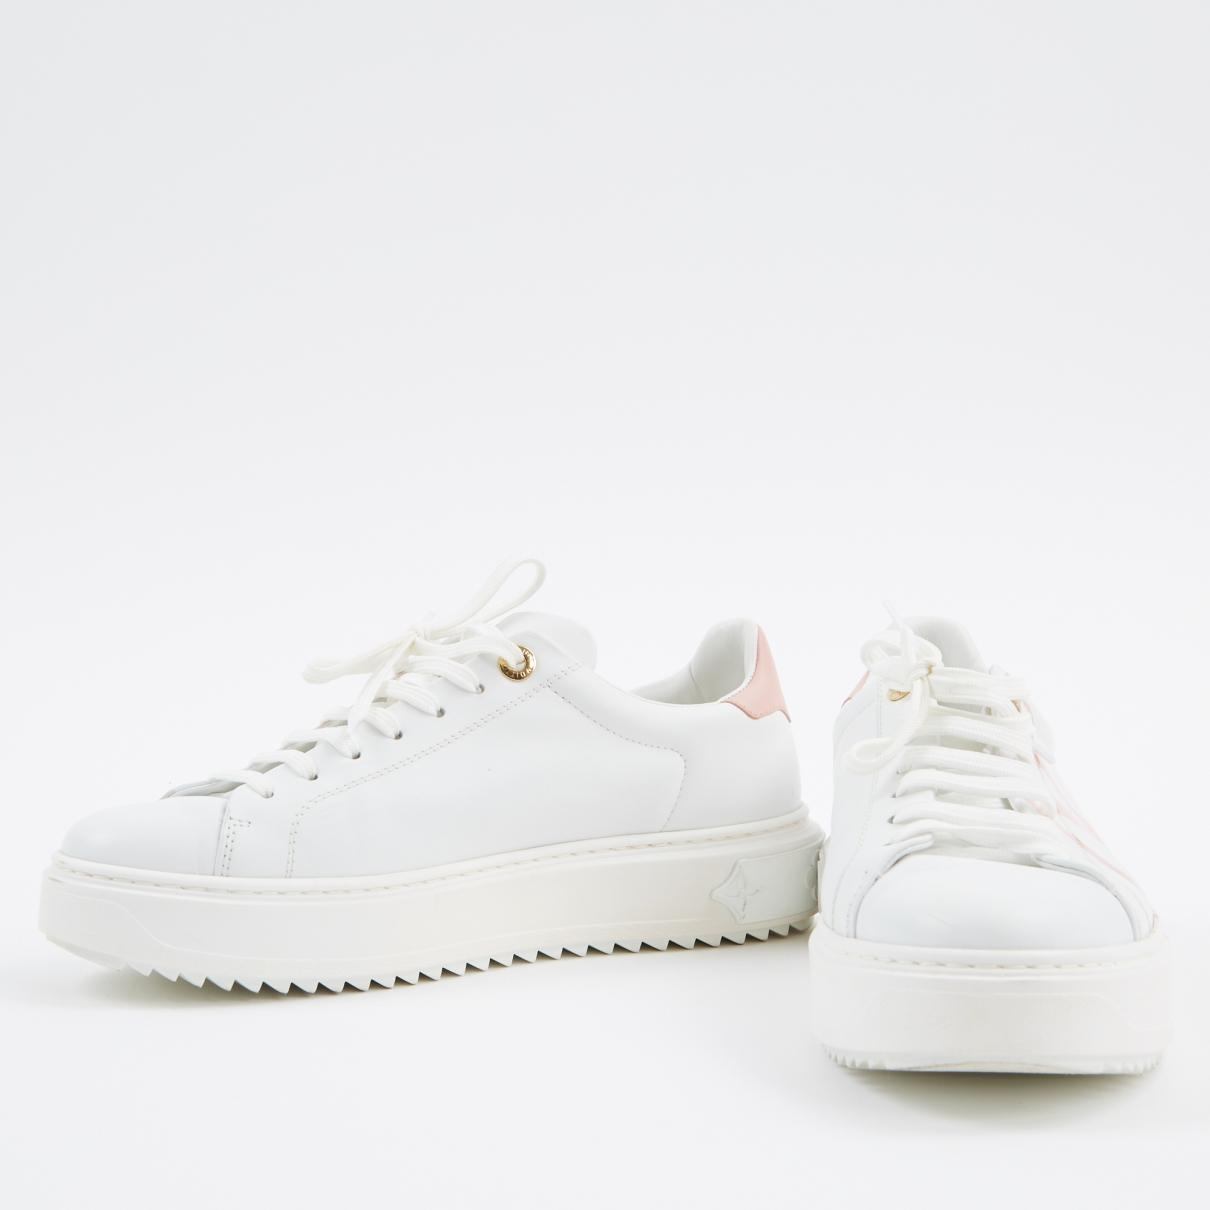 7ca0457334 Louis Vuitton Pre-owned Timeout White Leather Trainers